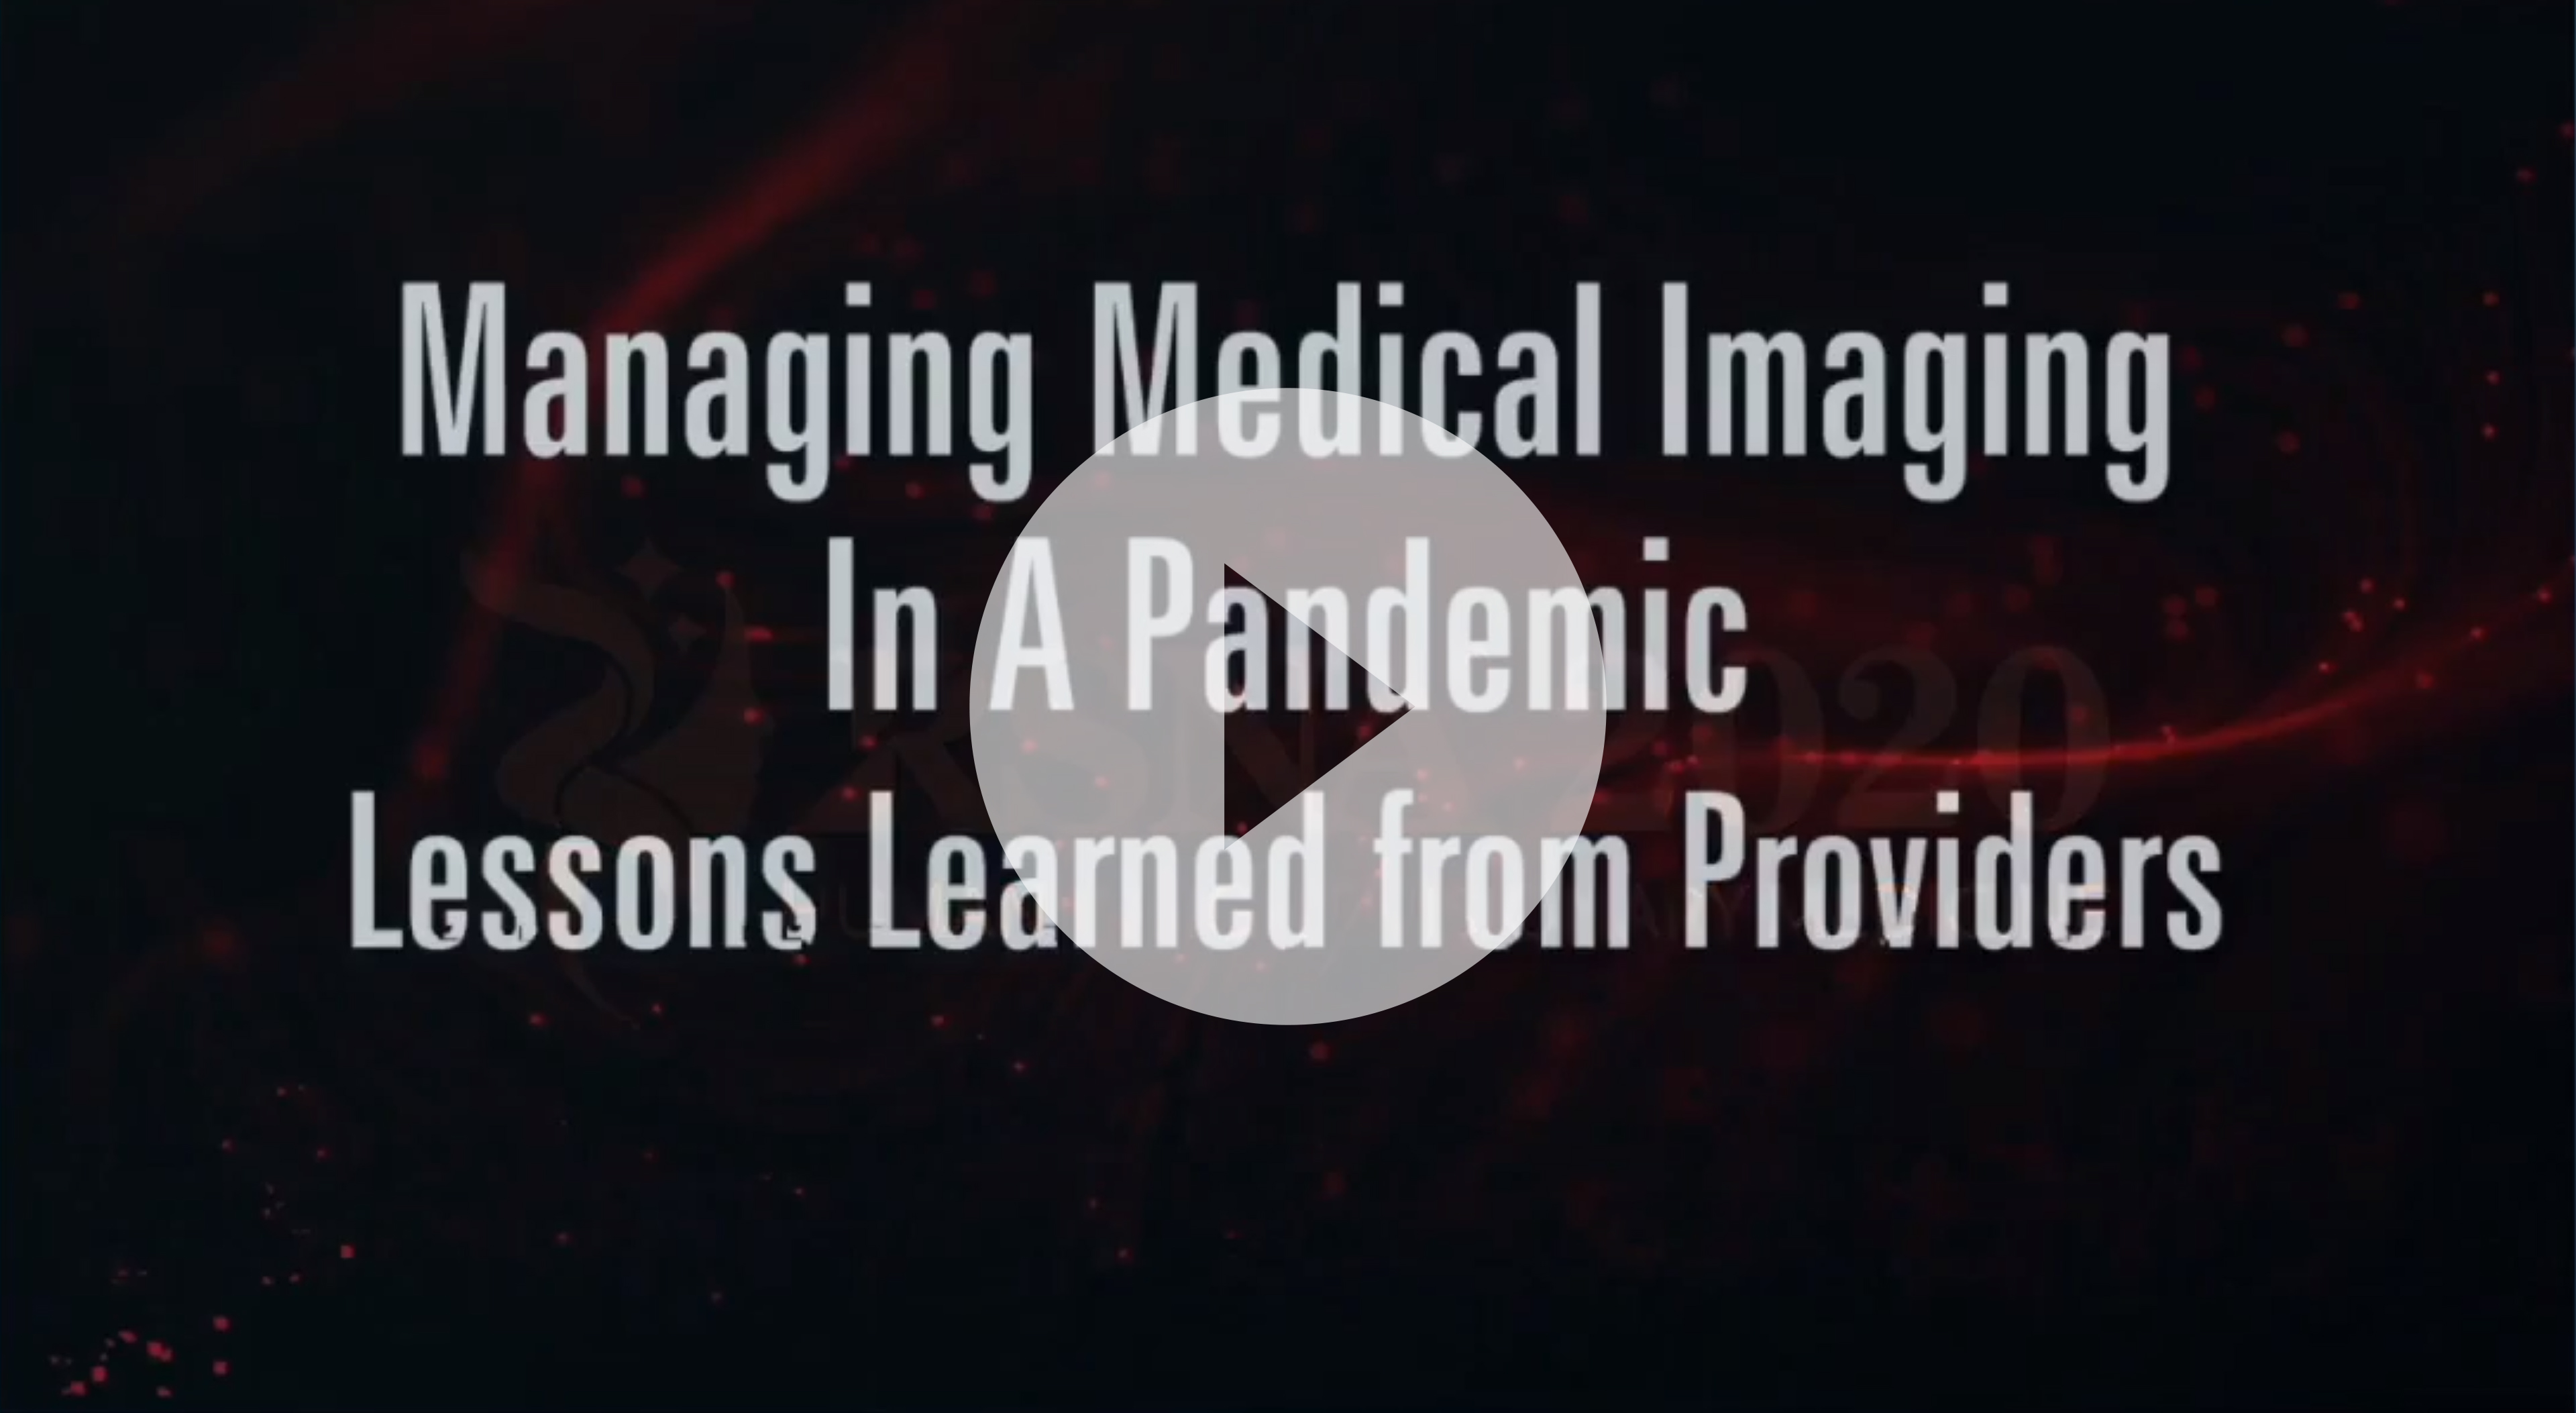 RSNA 2020 Lunch & Learn: Managing Medical Imaging in a Pandemic: Lessons Learned from Providers.